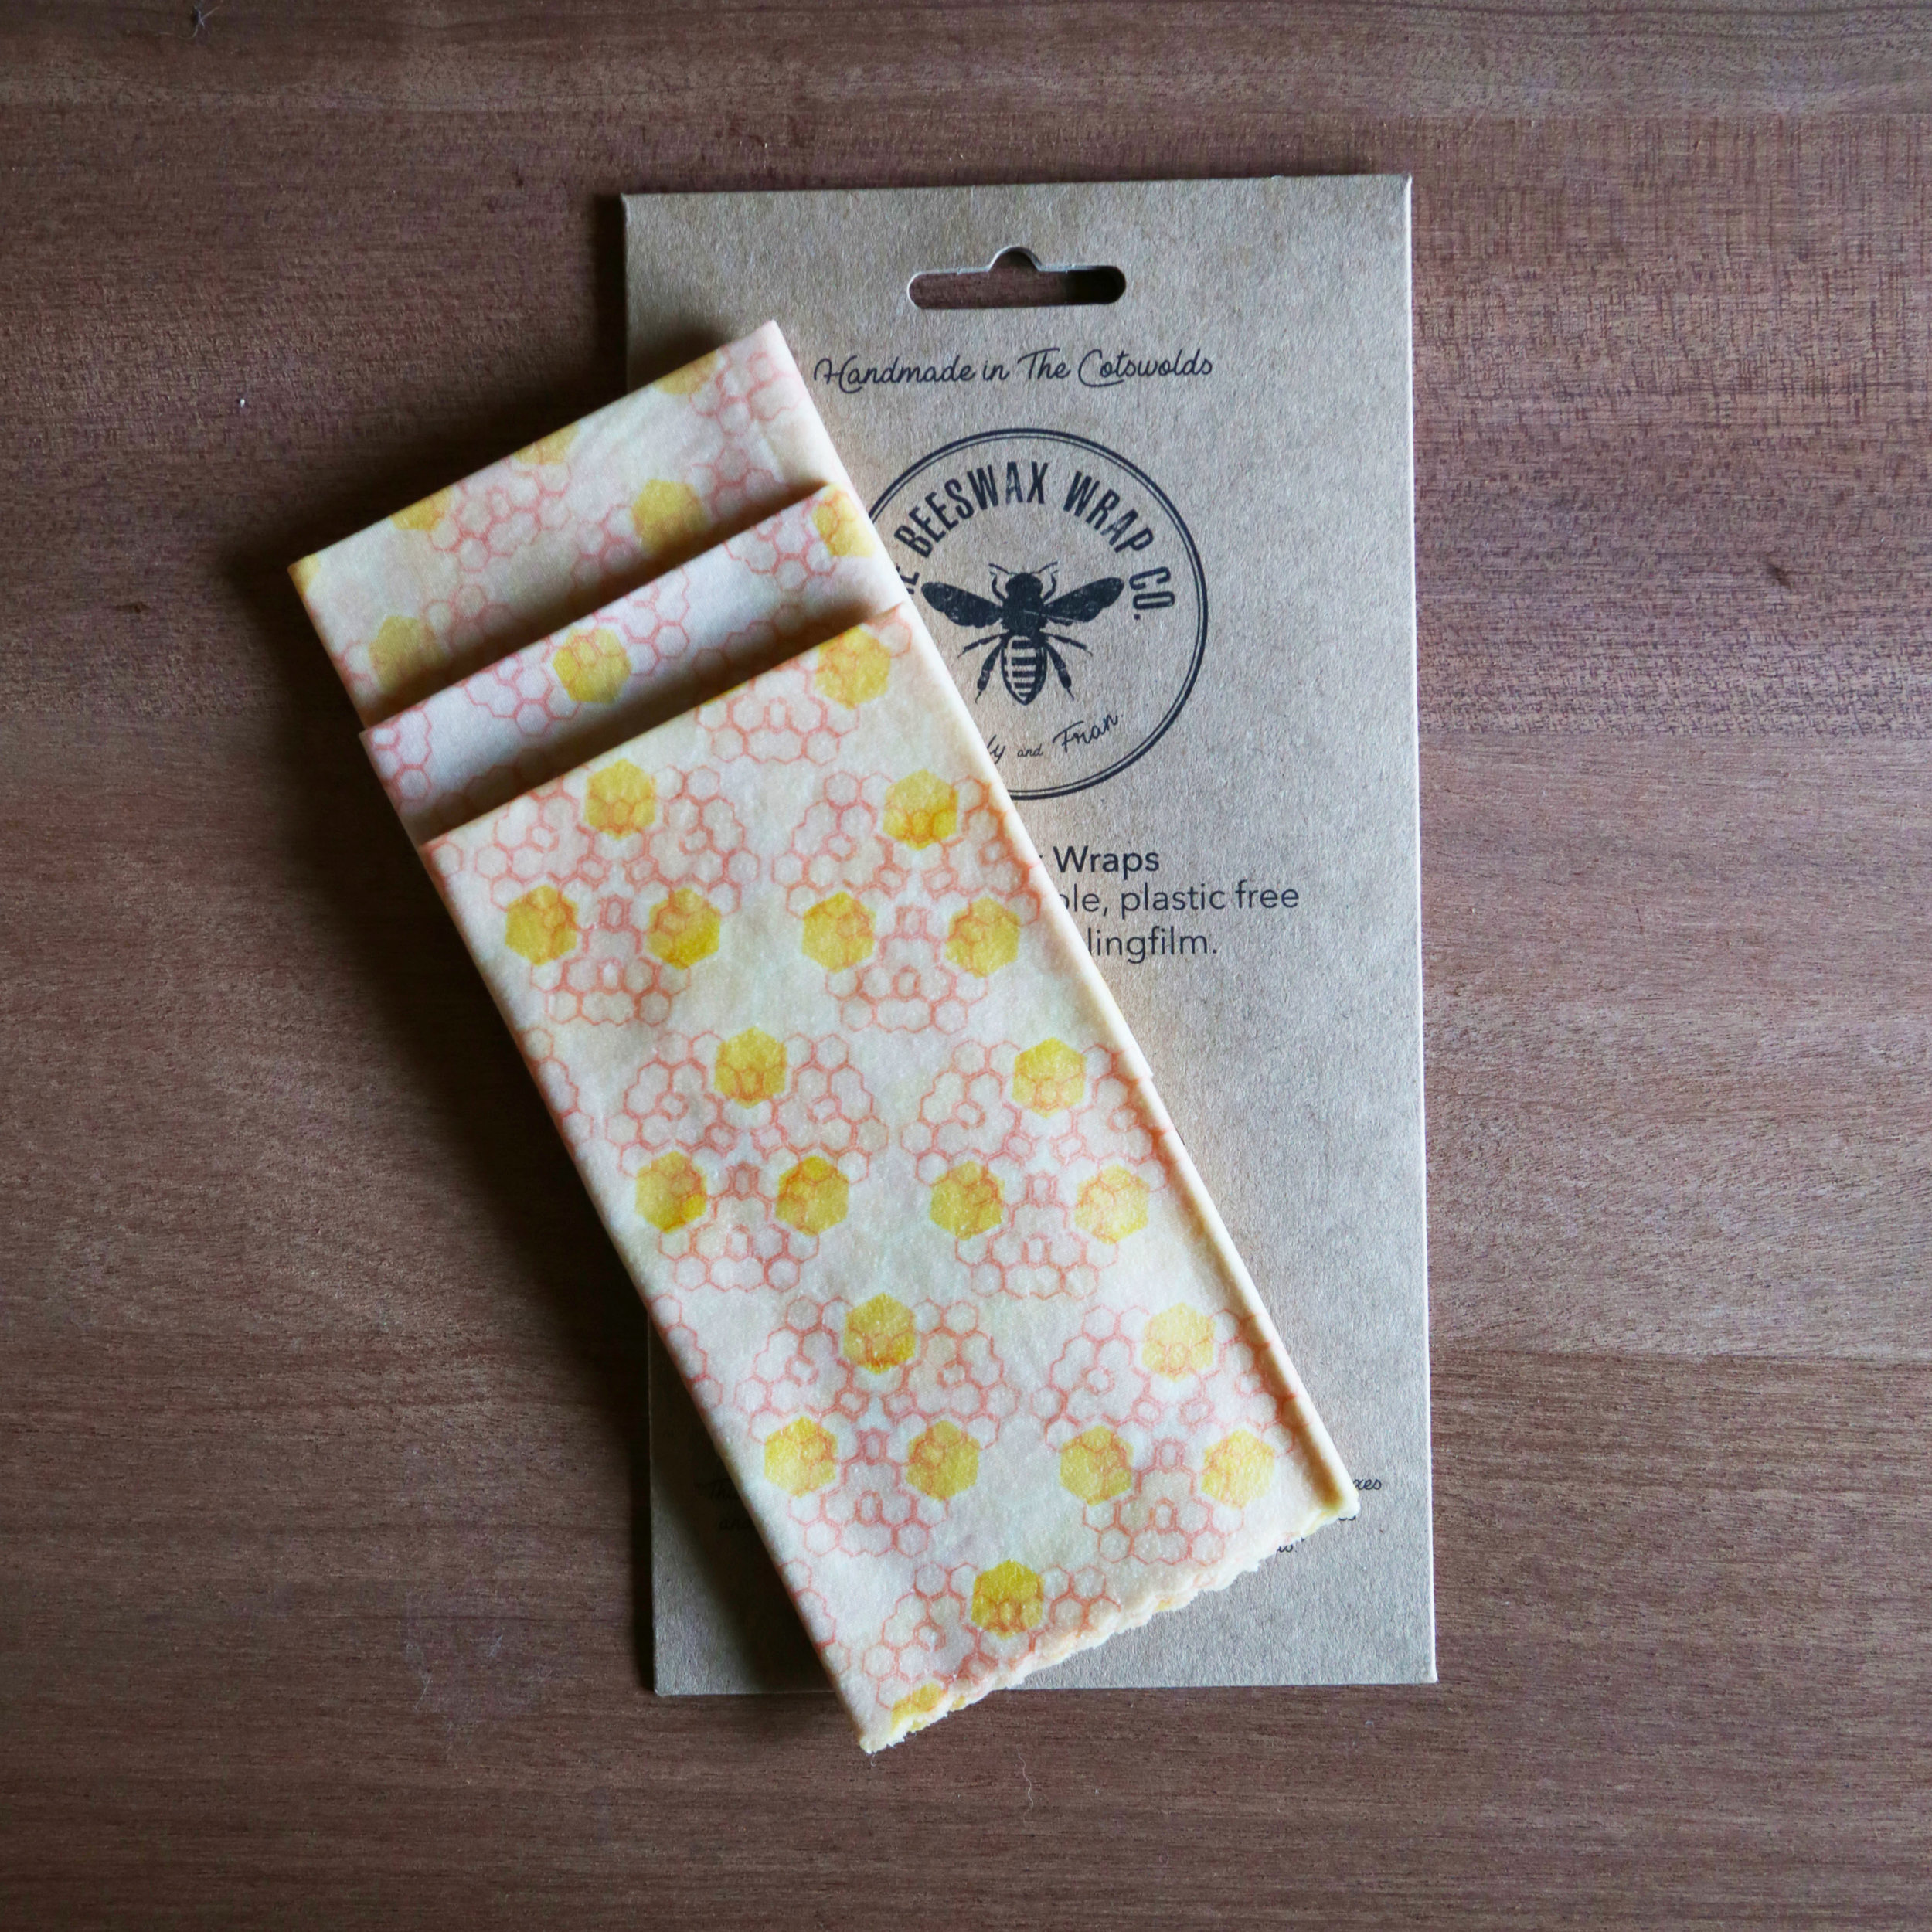 Honeycomb Cheese Pack low res.jpg